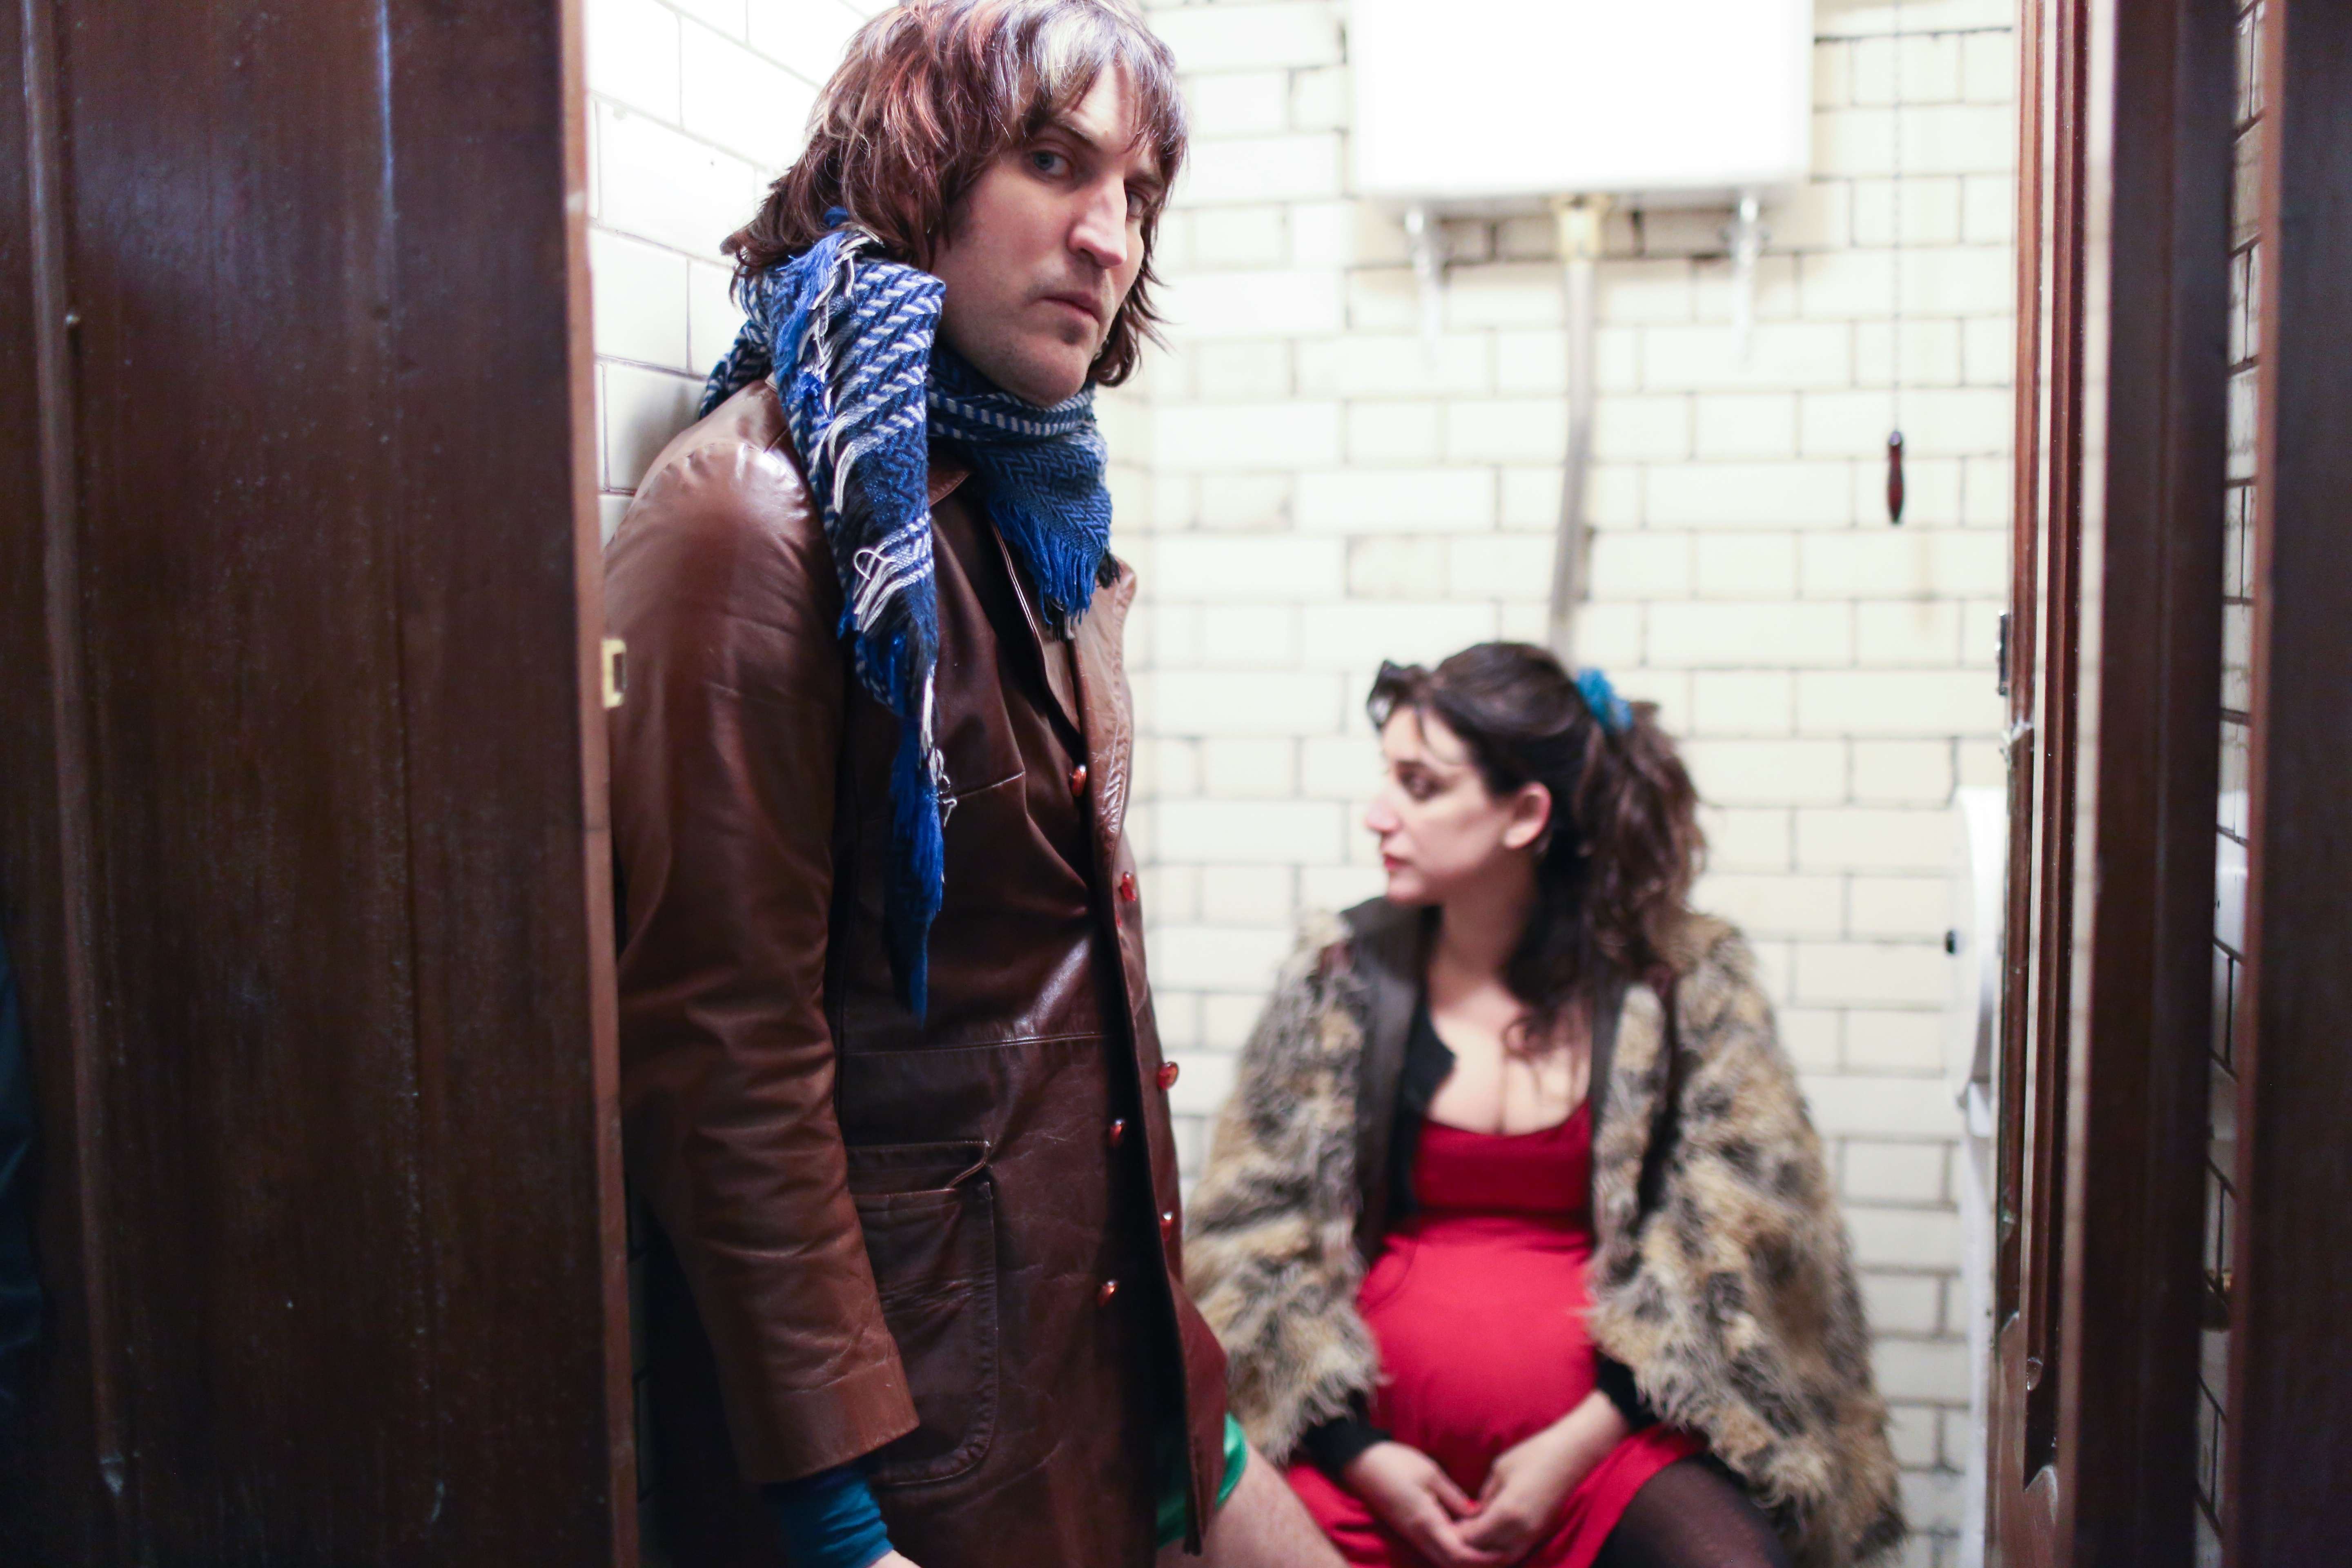 Noel Fielding in toilet cubicle with pregnant woman